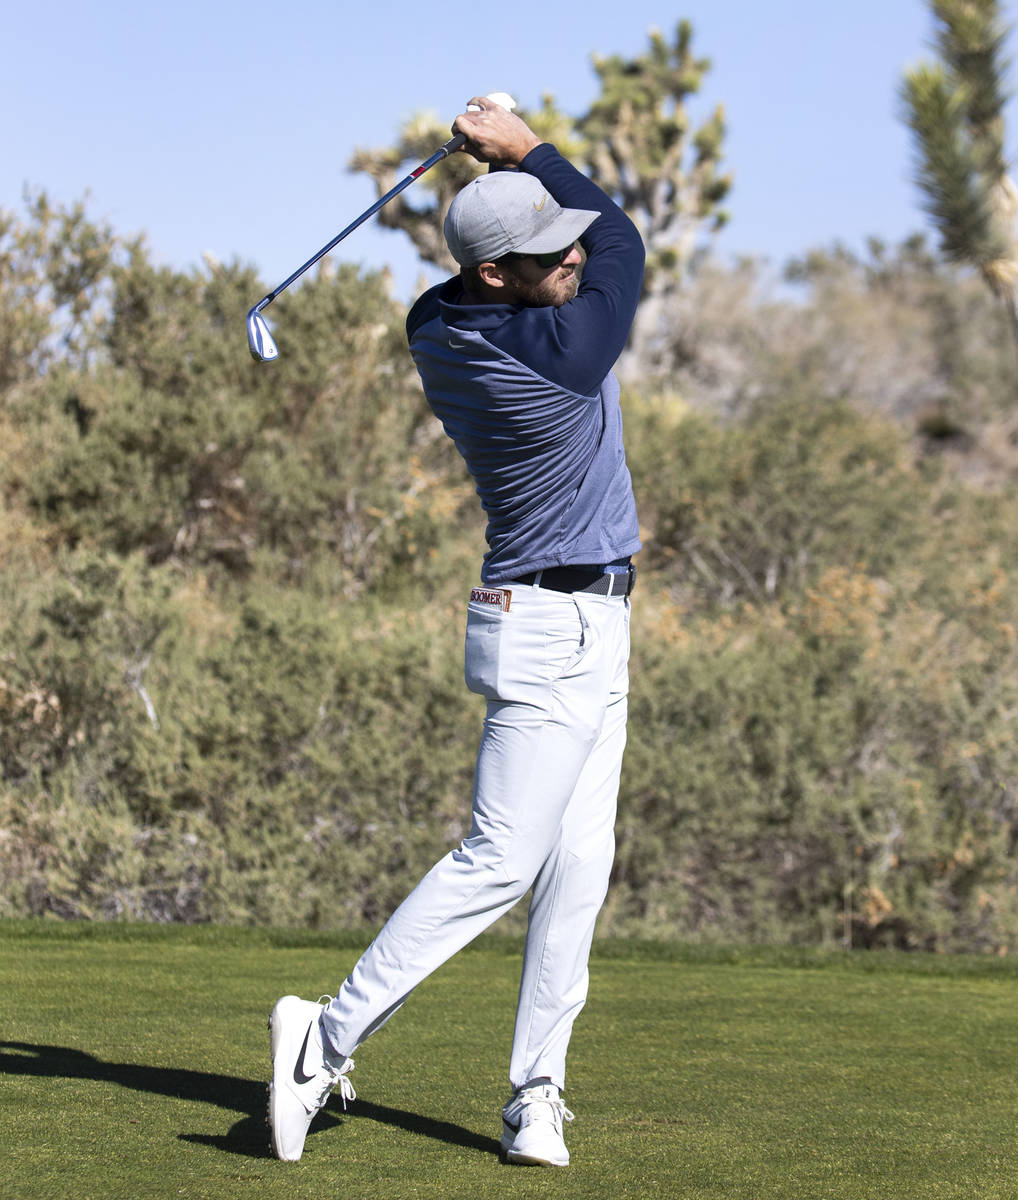 Michael Schoolcraft of Denver, Colo., watches his drive during the first round of the MGM Champ ...